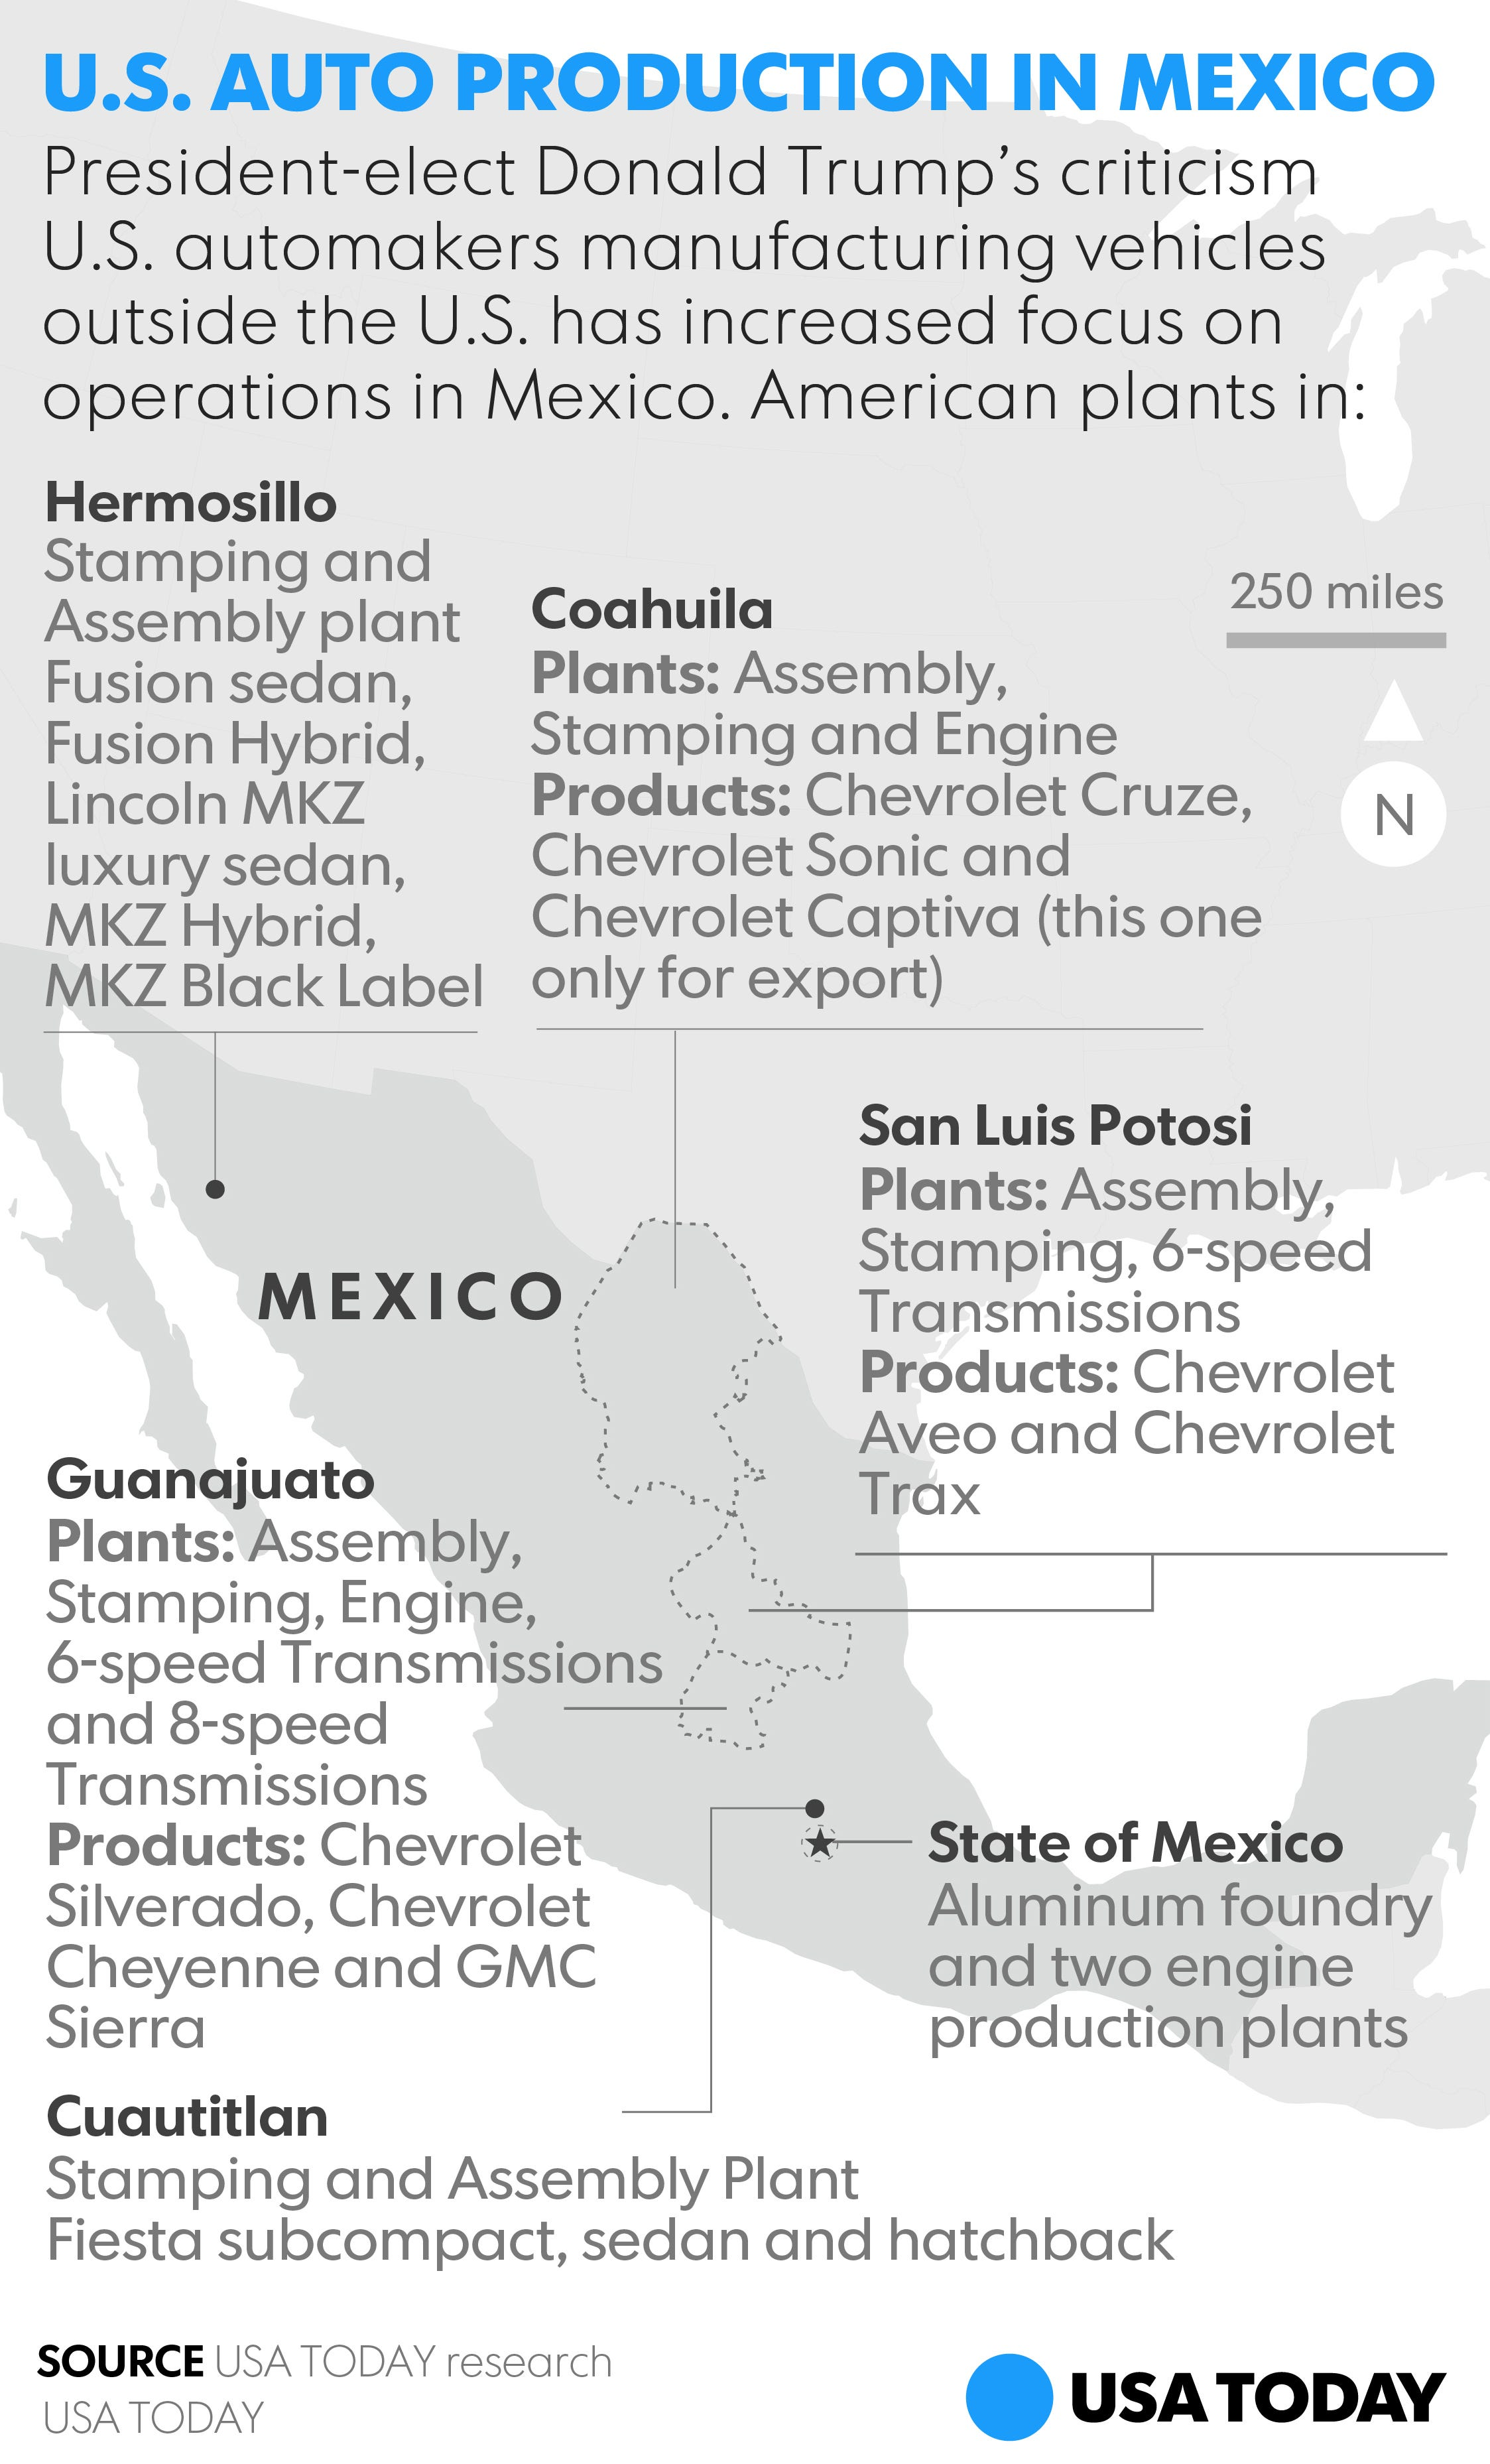 Ford cancels mexico plant expands us factory and adds 700 jobs follow usa today reporter nathan bomey on twitter nathanbomey xflitez Images